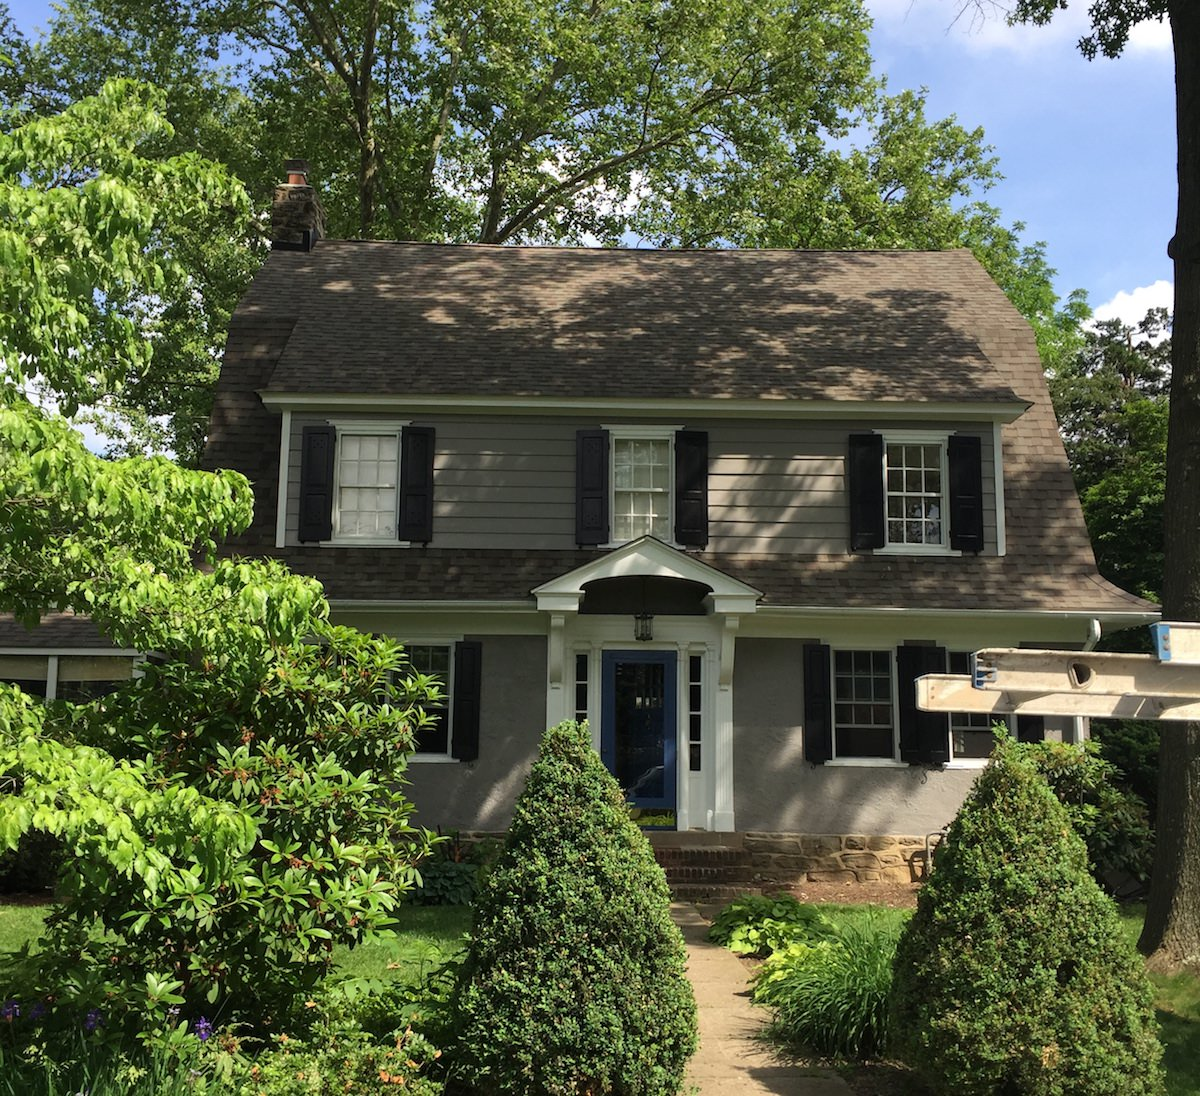 Exterior Painting in Wyndmoor - After 5